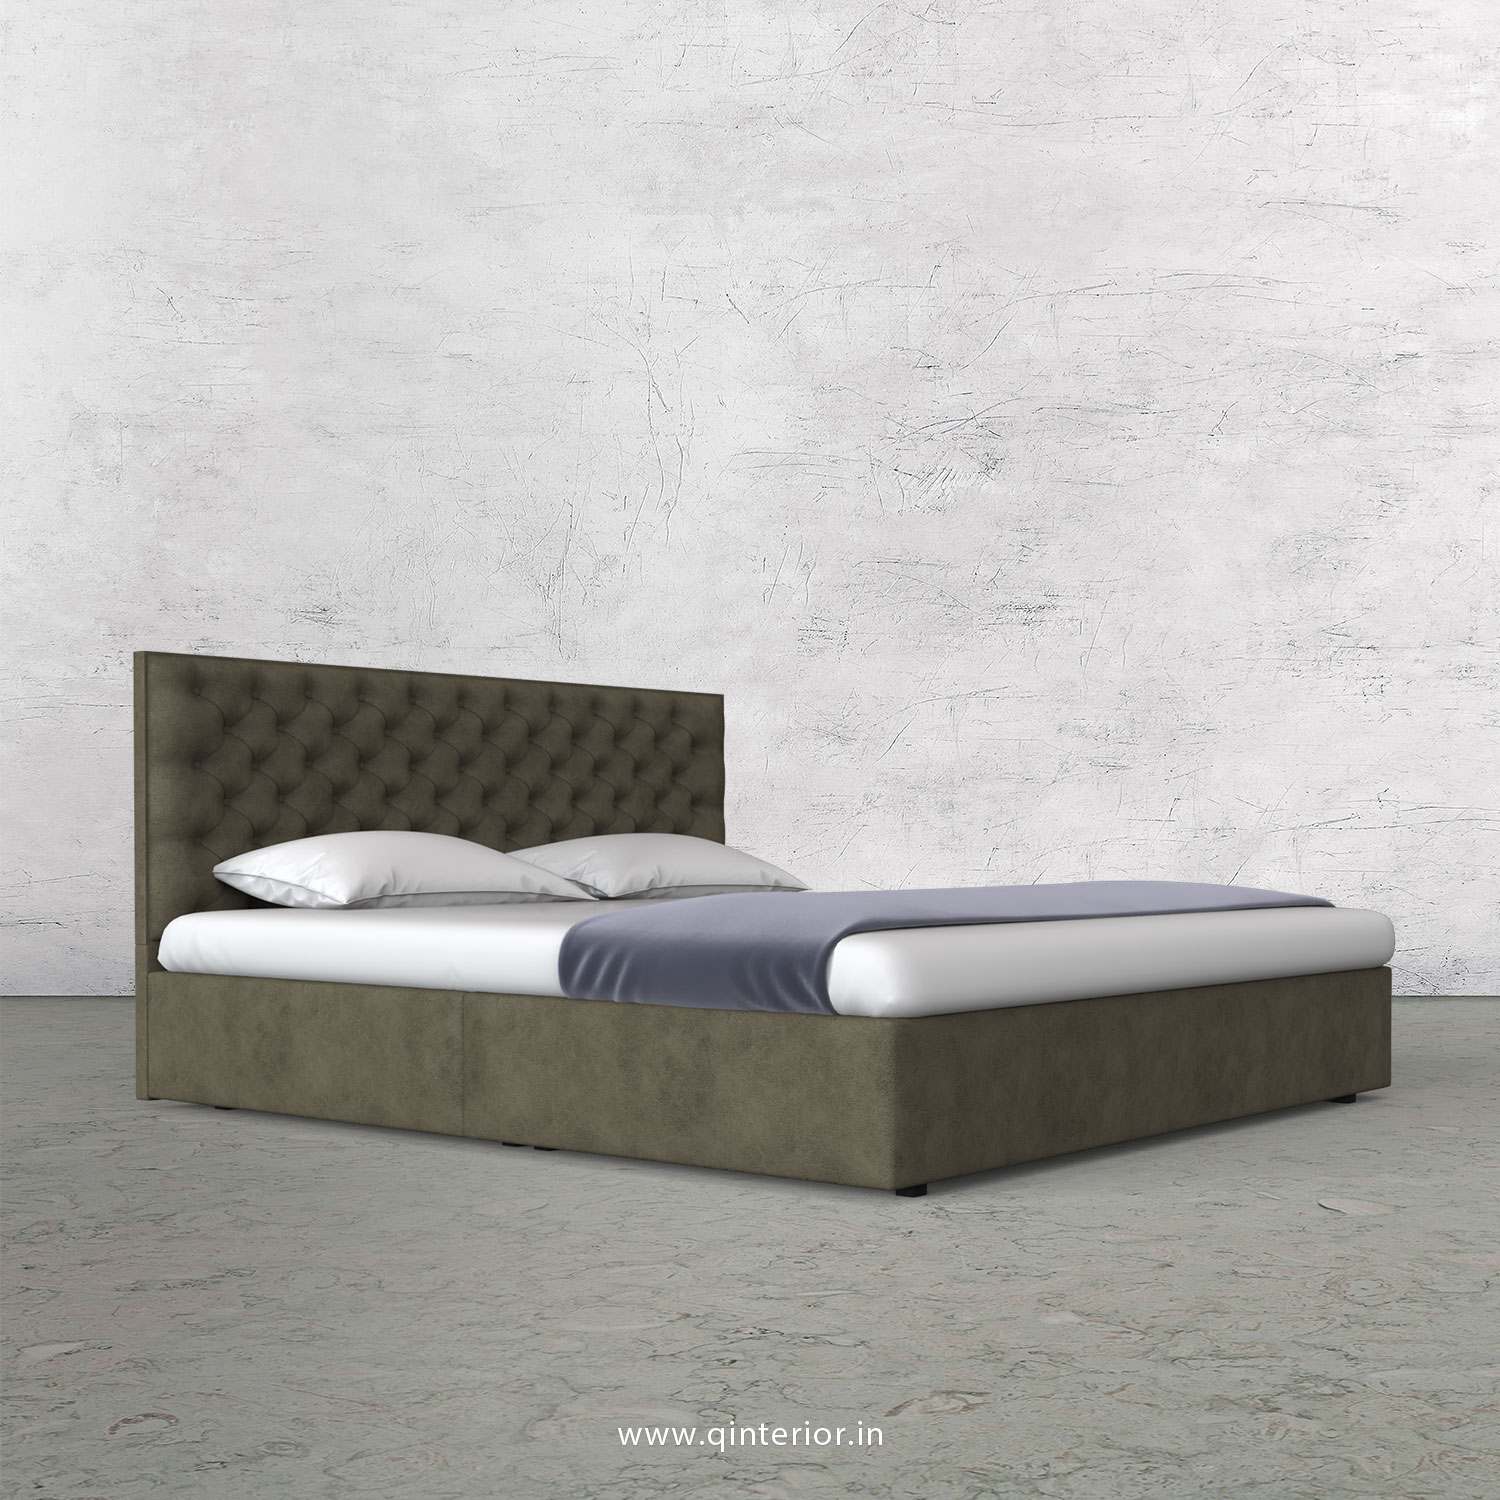 Orion King Size Bed in Fab Leather Fabric - KBD009 FL03